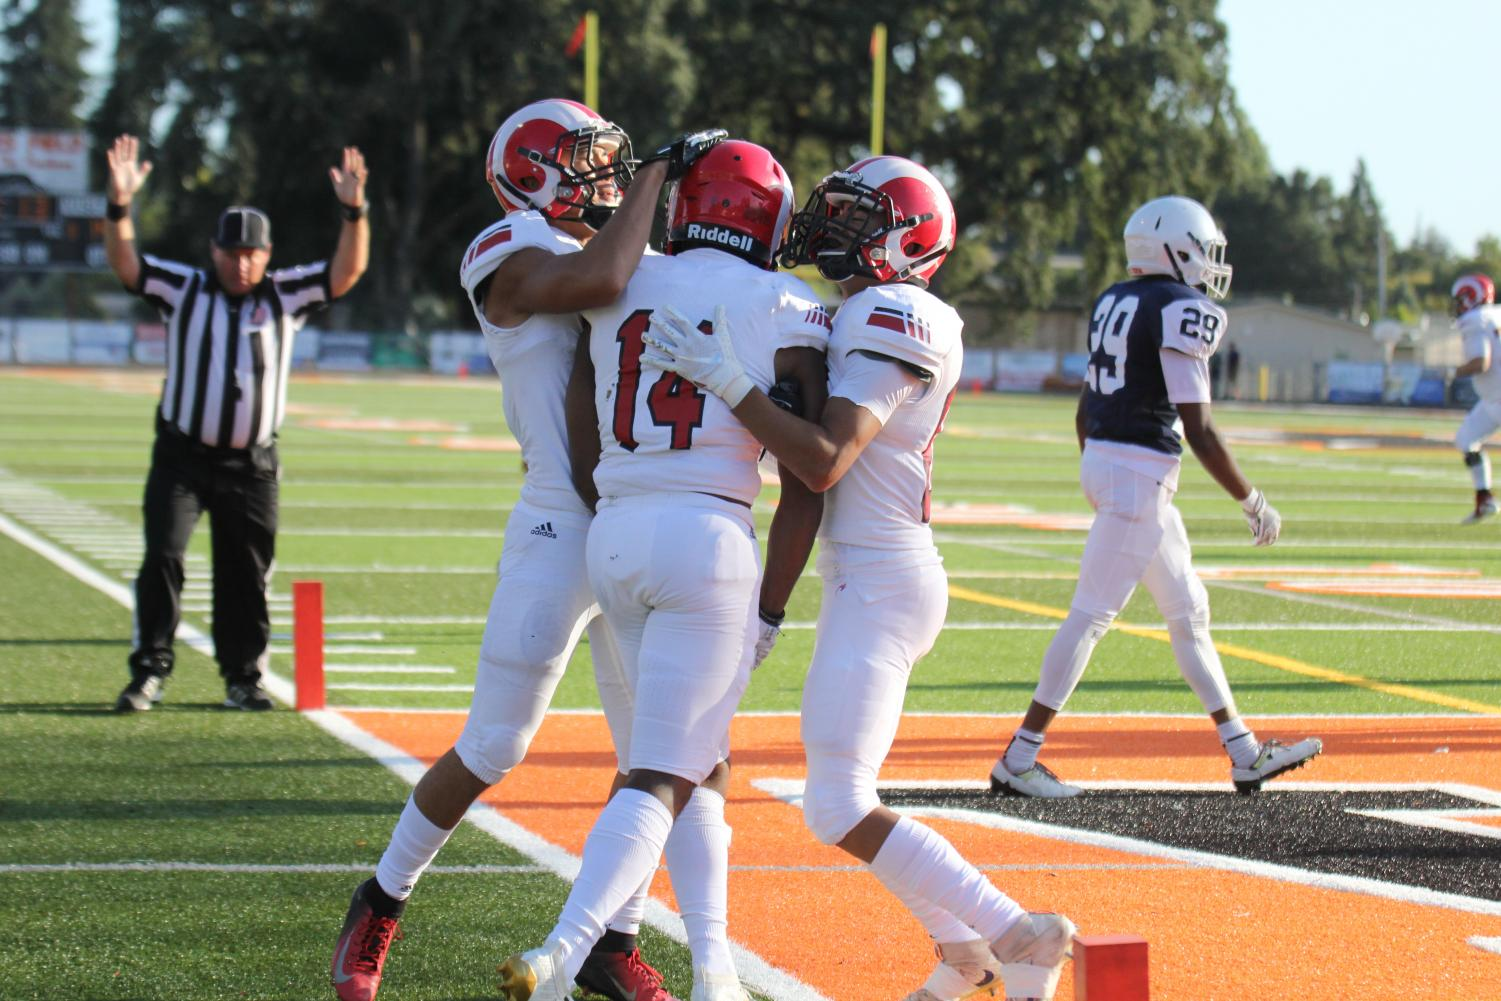 Rams sophomore wide receiver Chris Brown celebrates with teammates following a 14-yard touchdown completion from sophomore Quarterback Jonah Johnson on Sept. 7, 2019. The Rams defeated Santa Rosa Junior College 35-17 in their season opener.